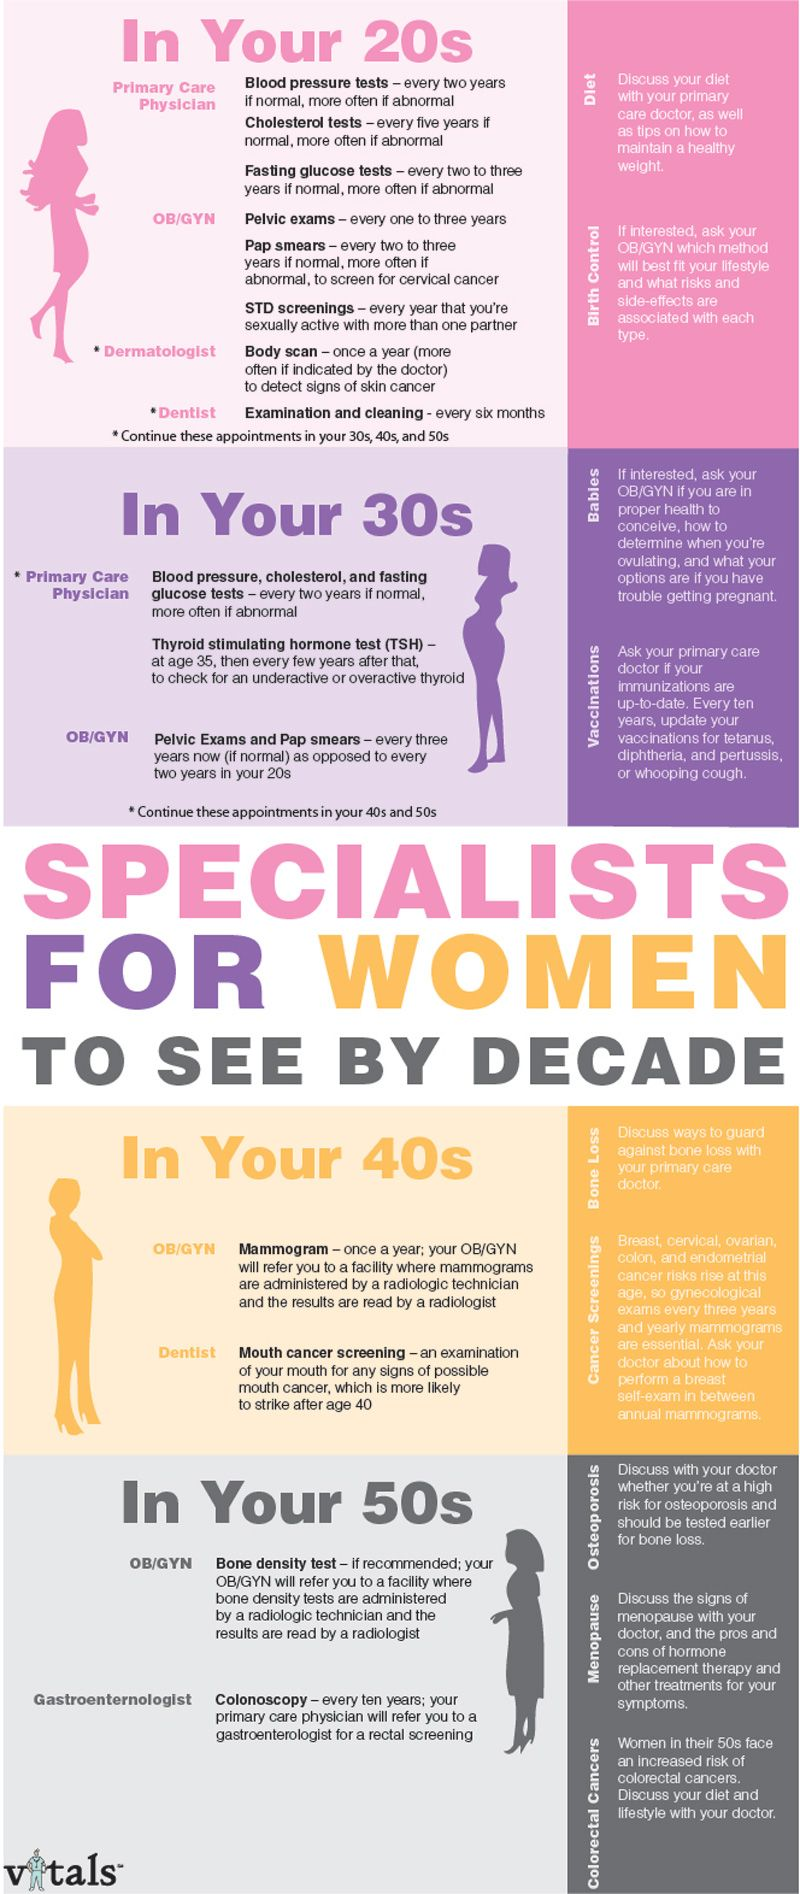 Specialist doctor that a woman need to see depending on her age